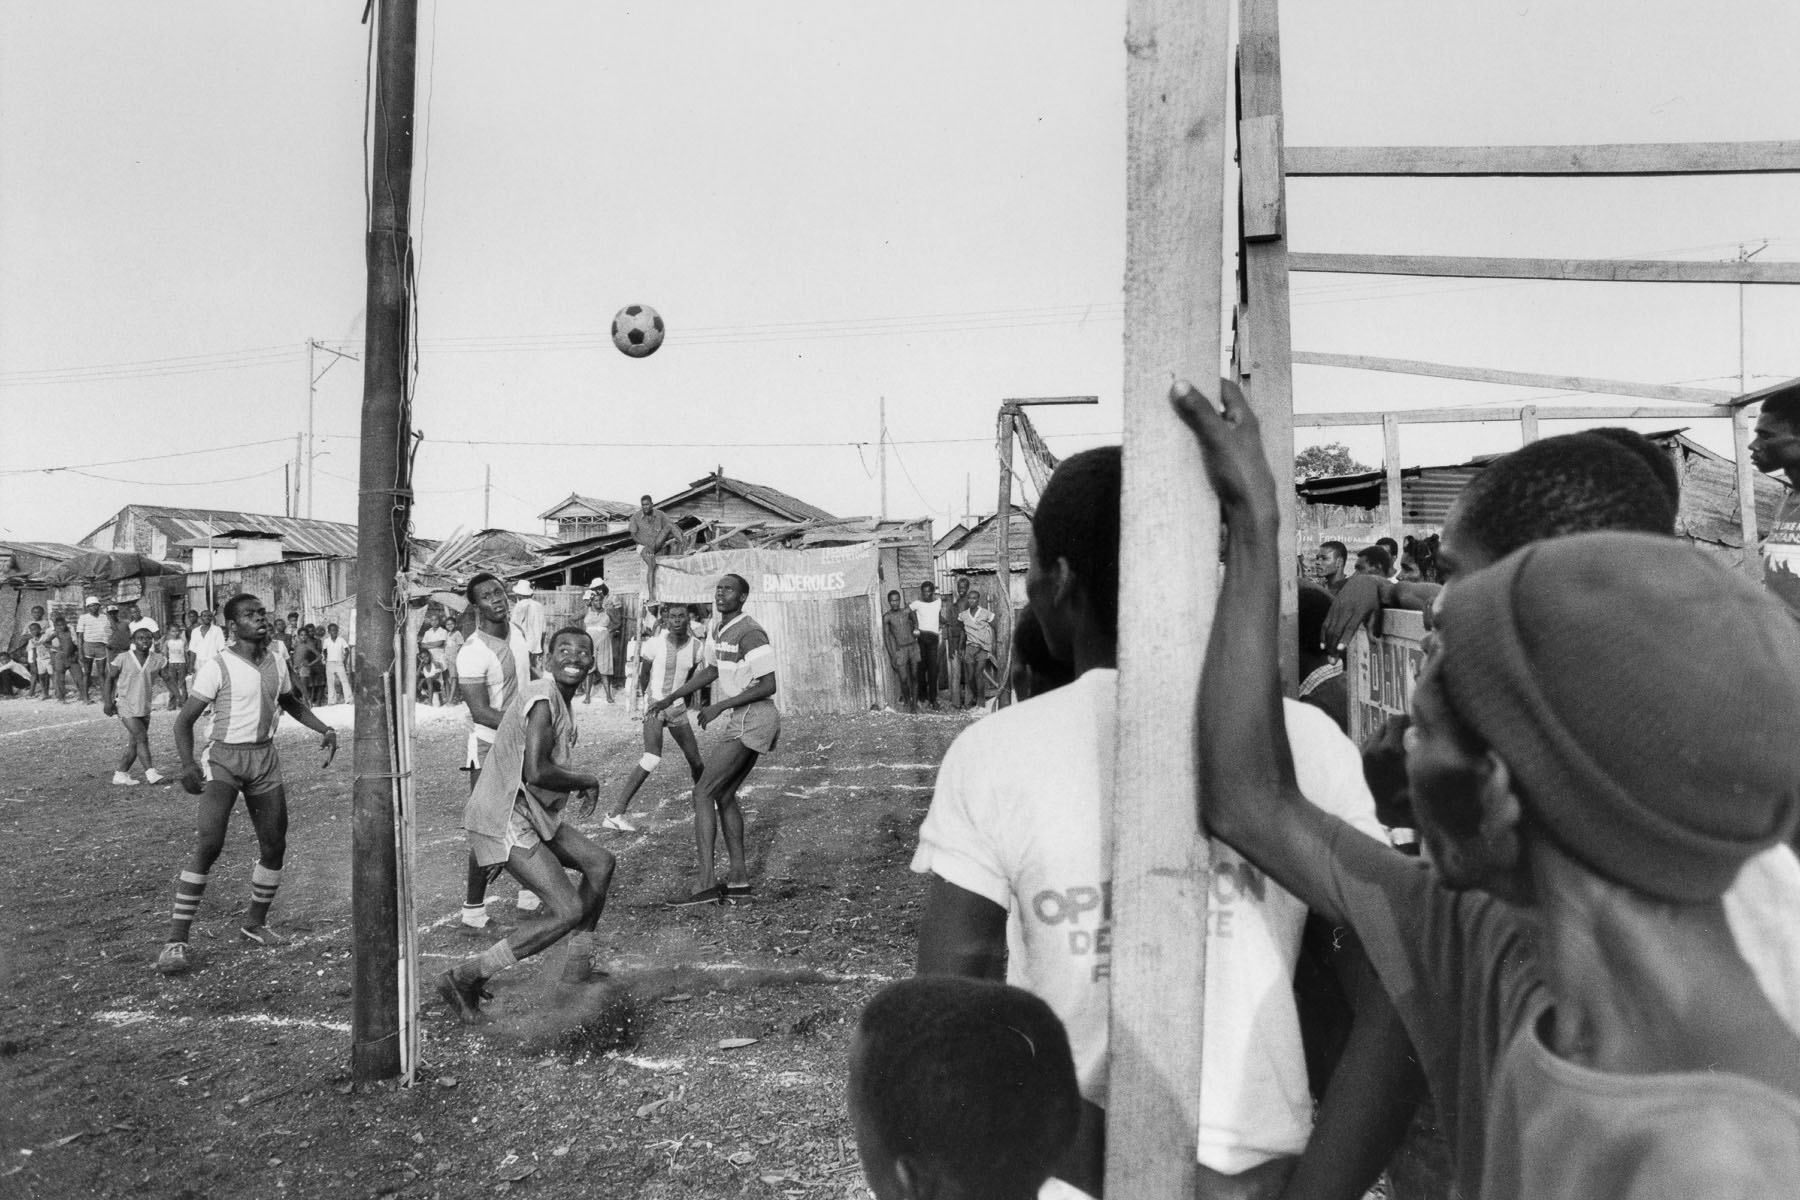 Football match in the shantytown of La Saline in August 1986